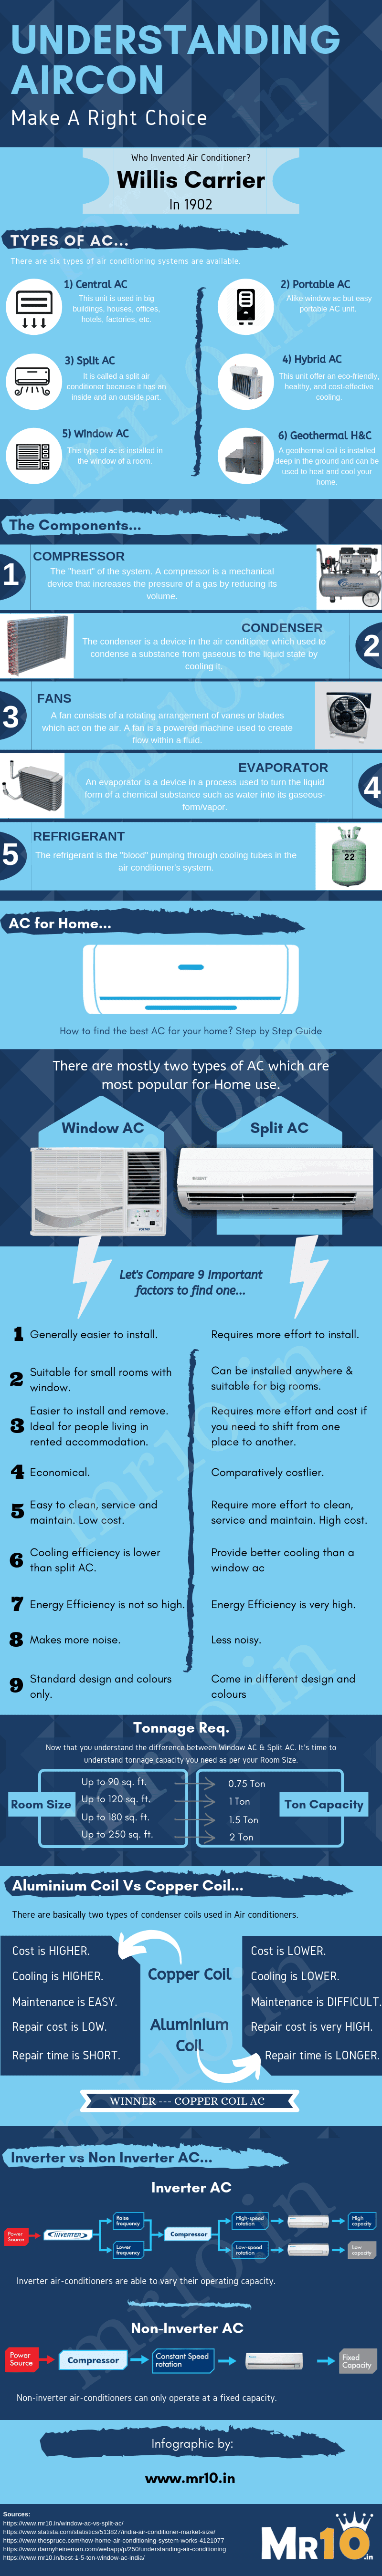 understand air conditioning basics